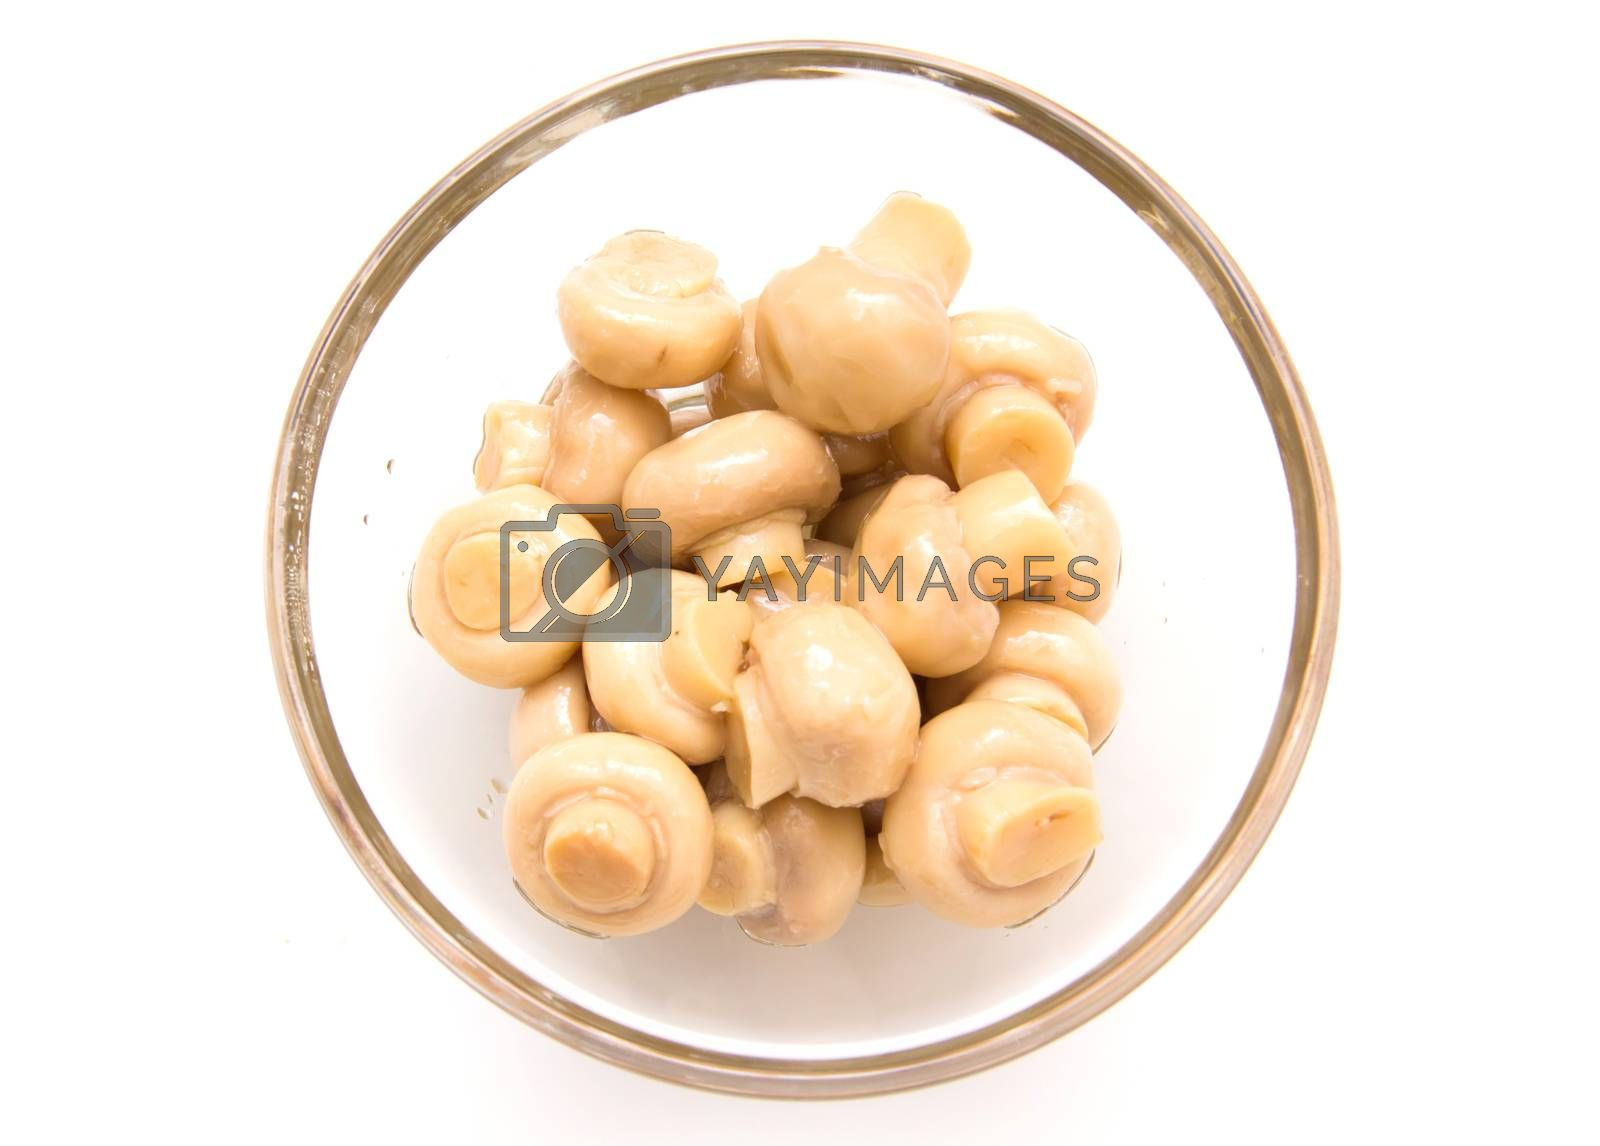 Mushrooms in glass bowl on white background seen from above